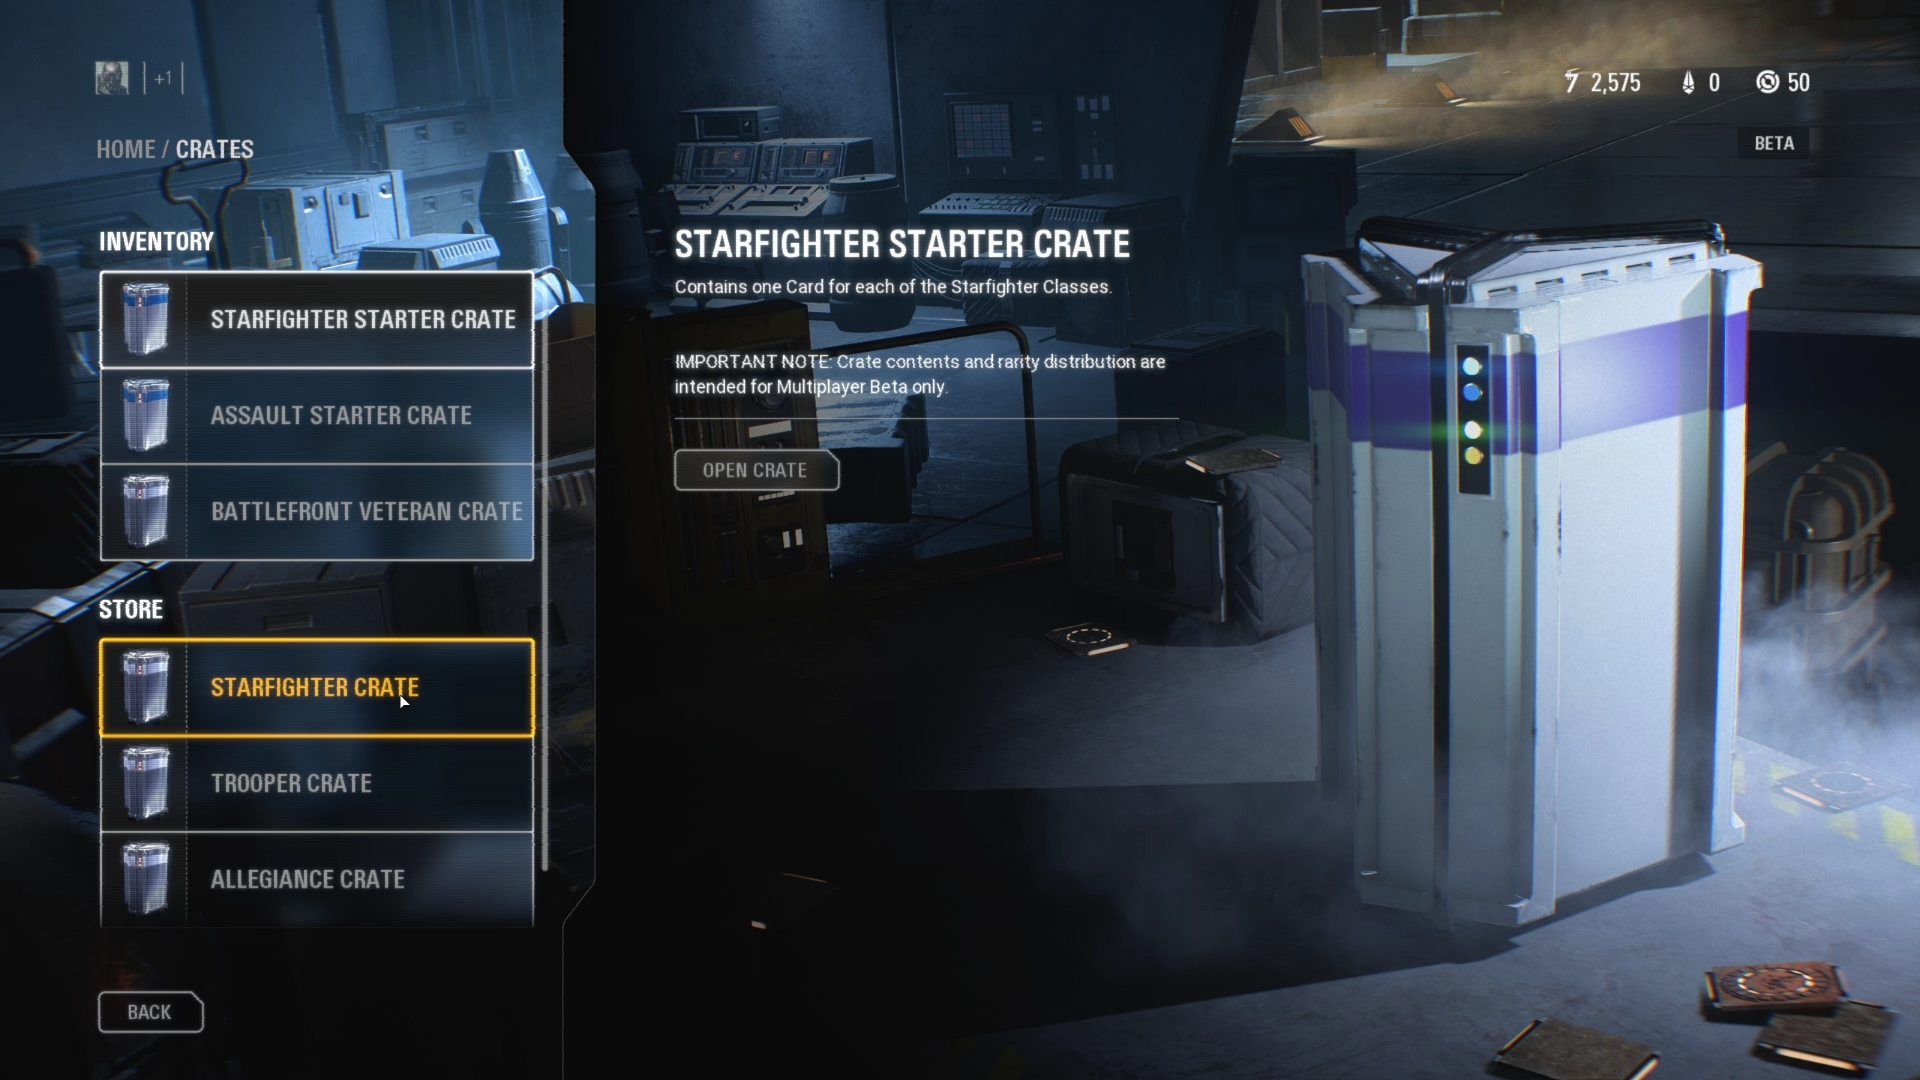 Star Wars Battlefront II Beta Sports Dynamic Resolution On Consoles; Full Technical Analysis Shared